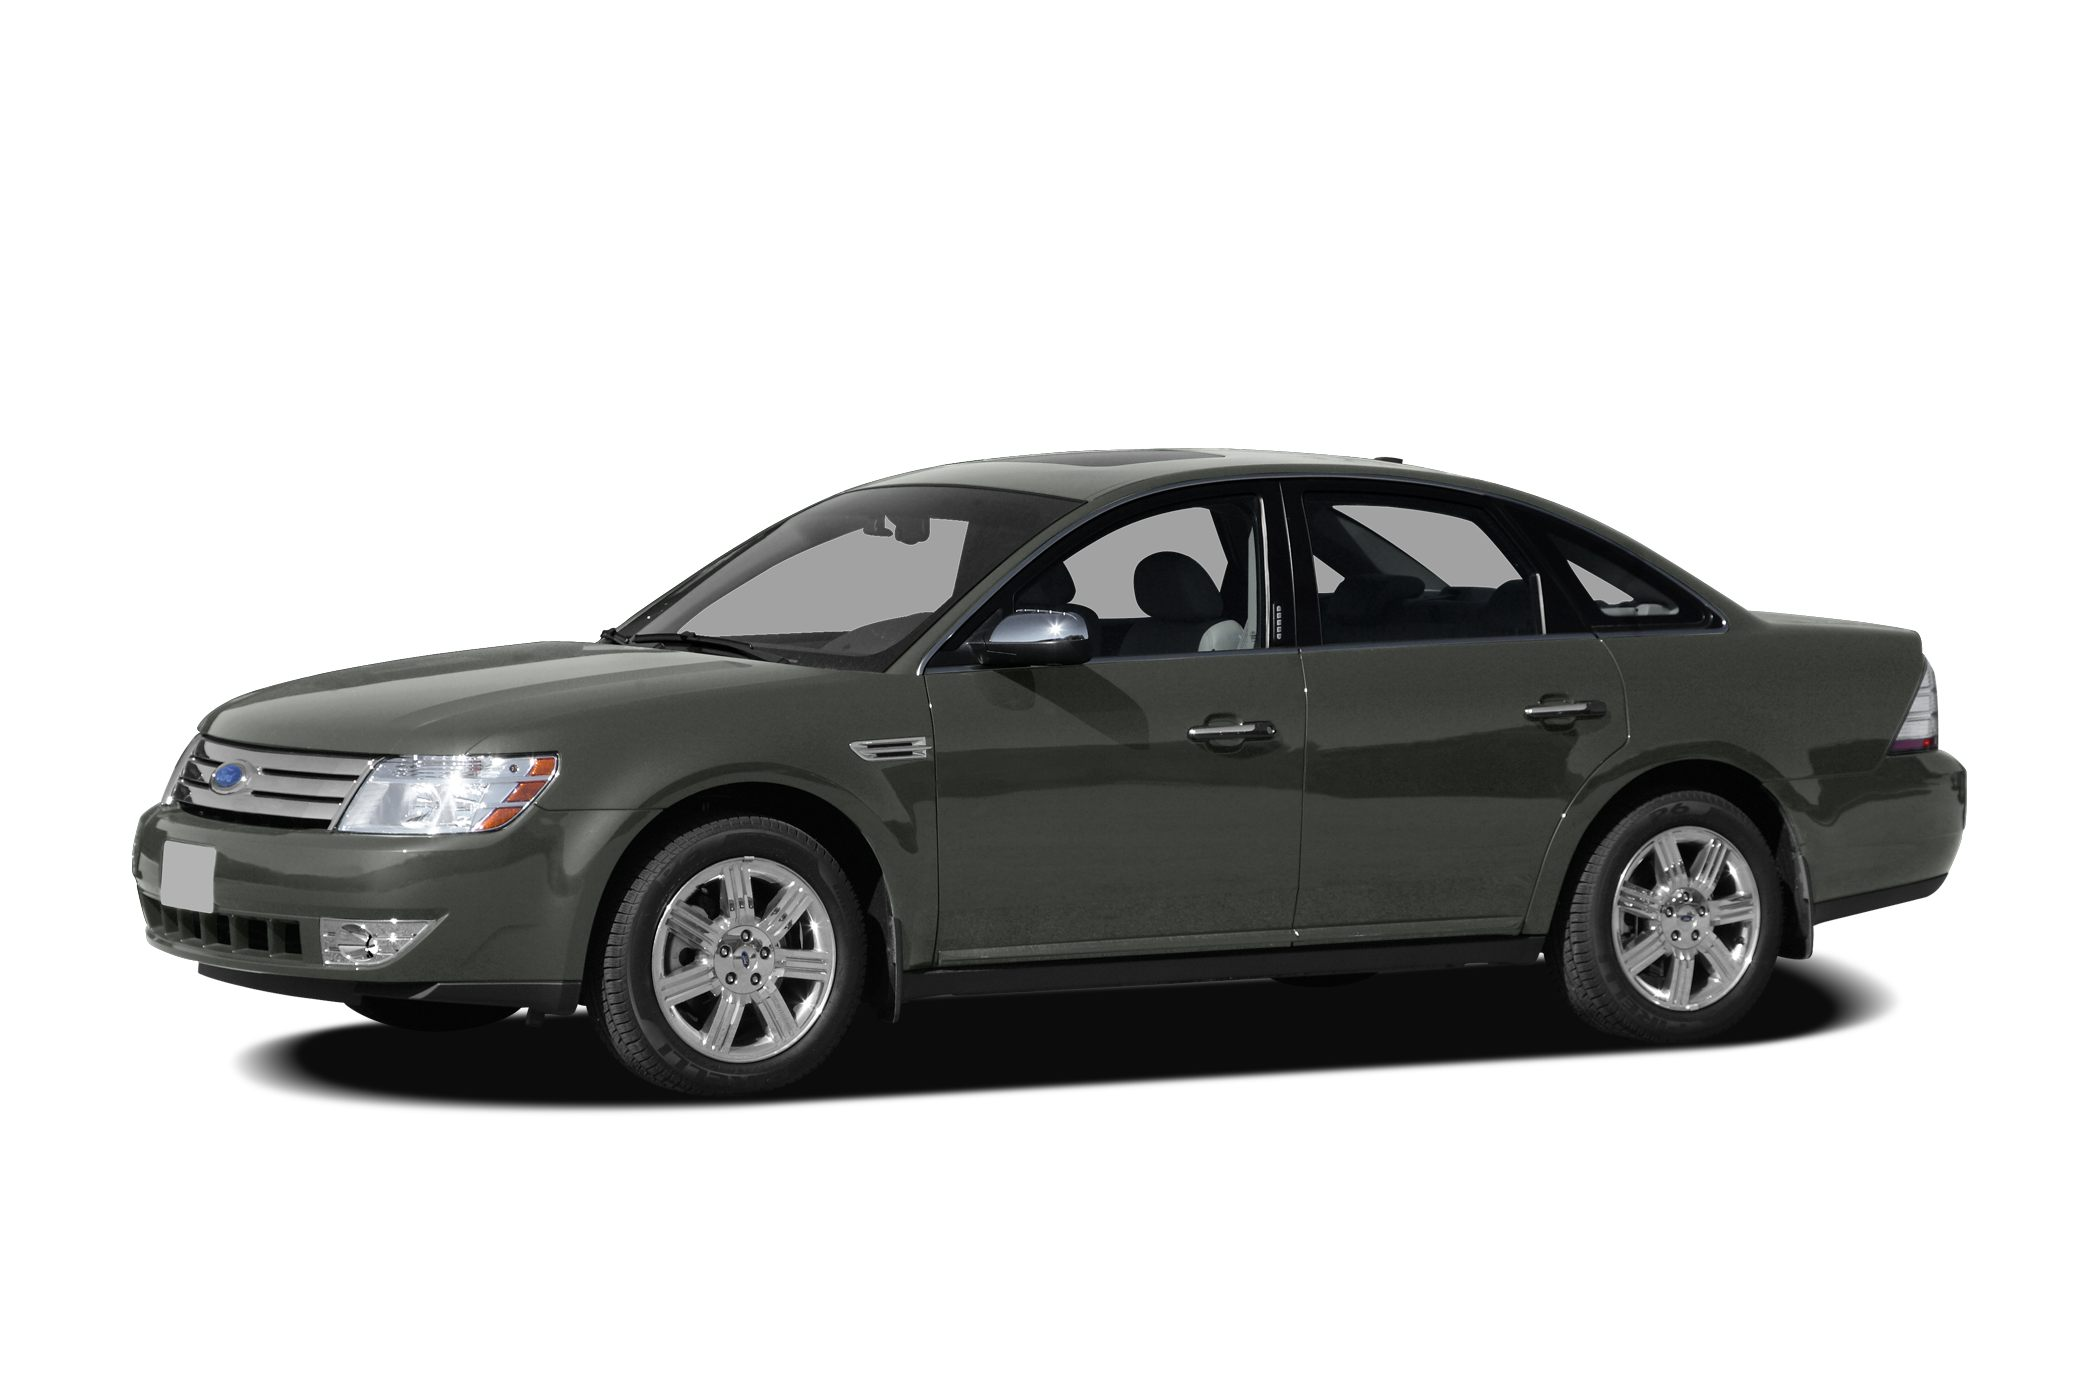 2008 Ford Taurus SEL Sedan for sale in Carrollton for $0 with 107,048 miles